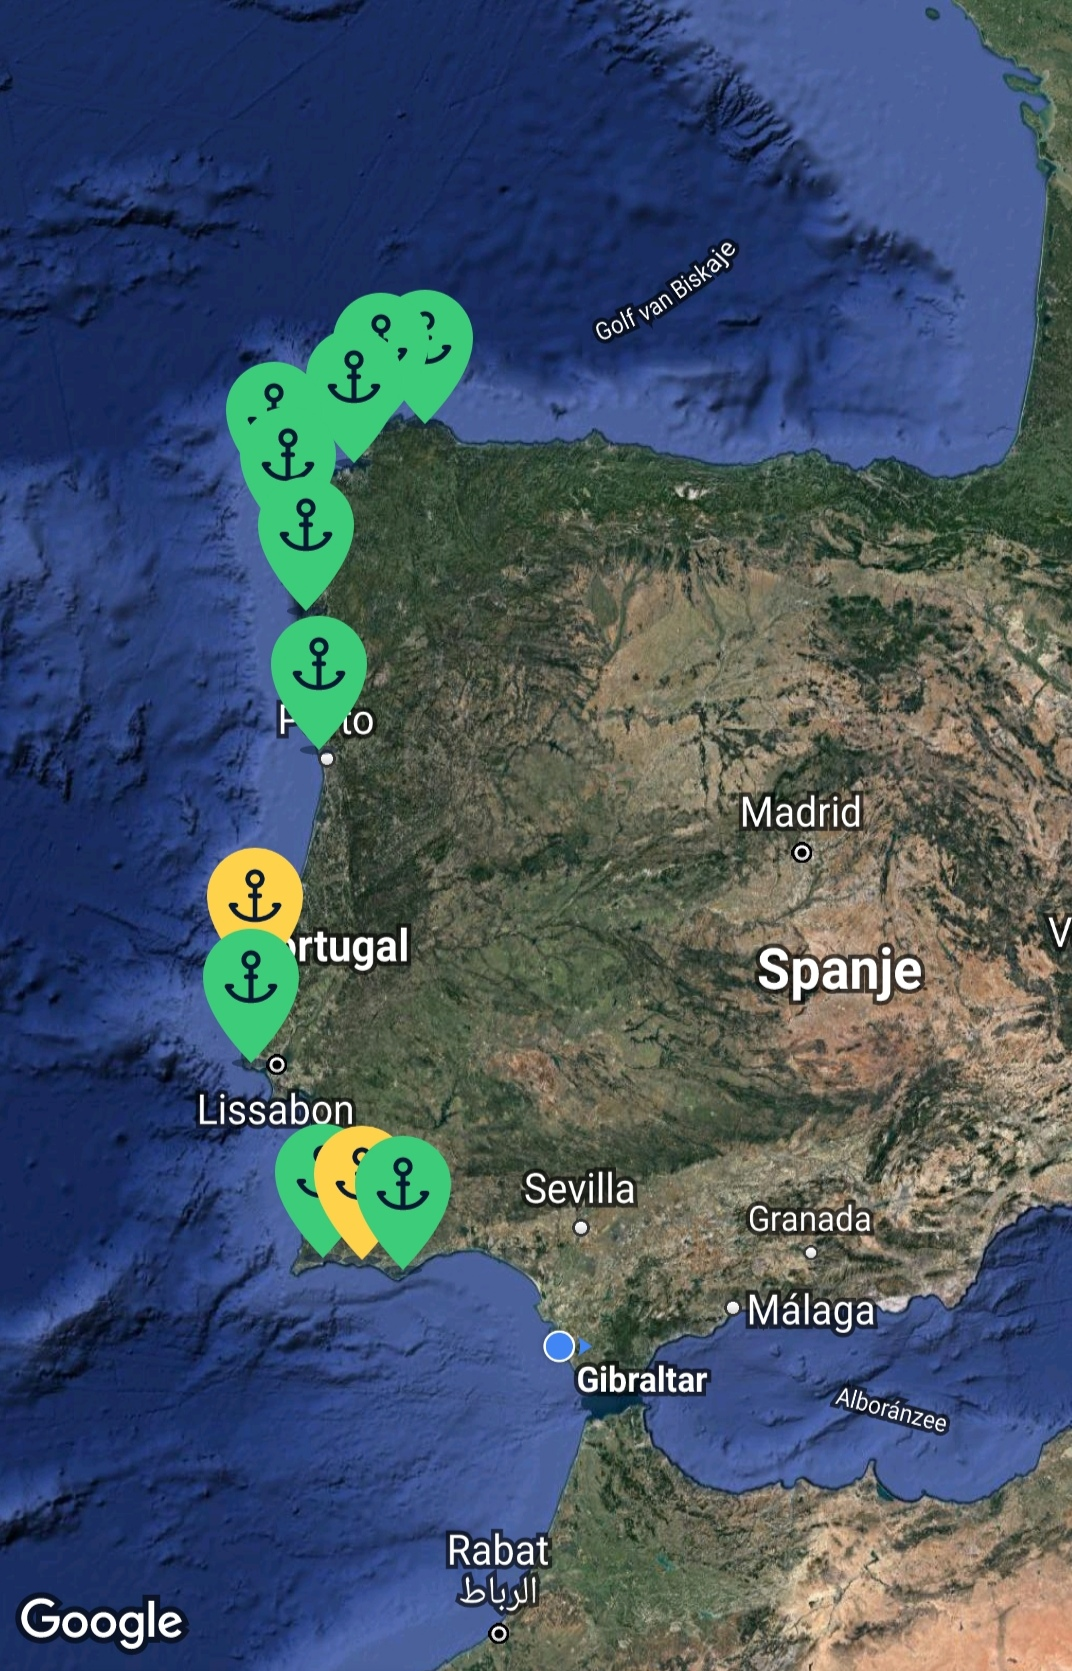 Our route (and anchorages) for the month of August 2020